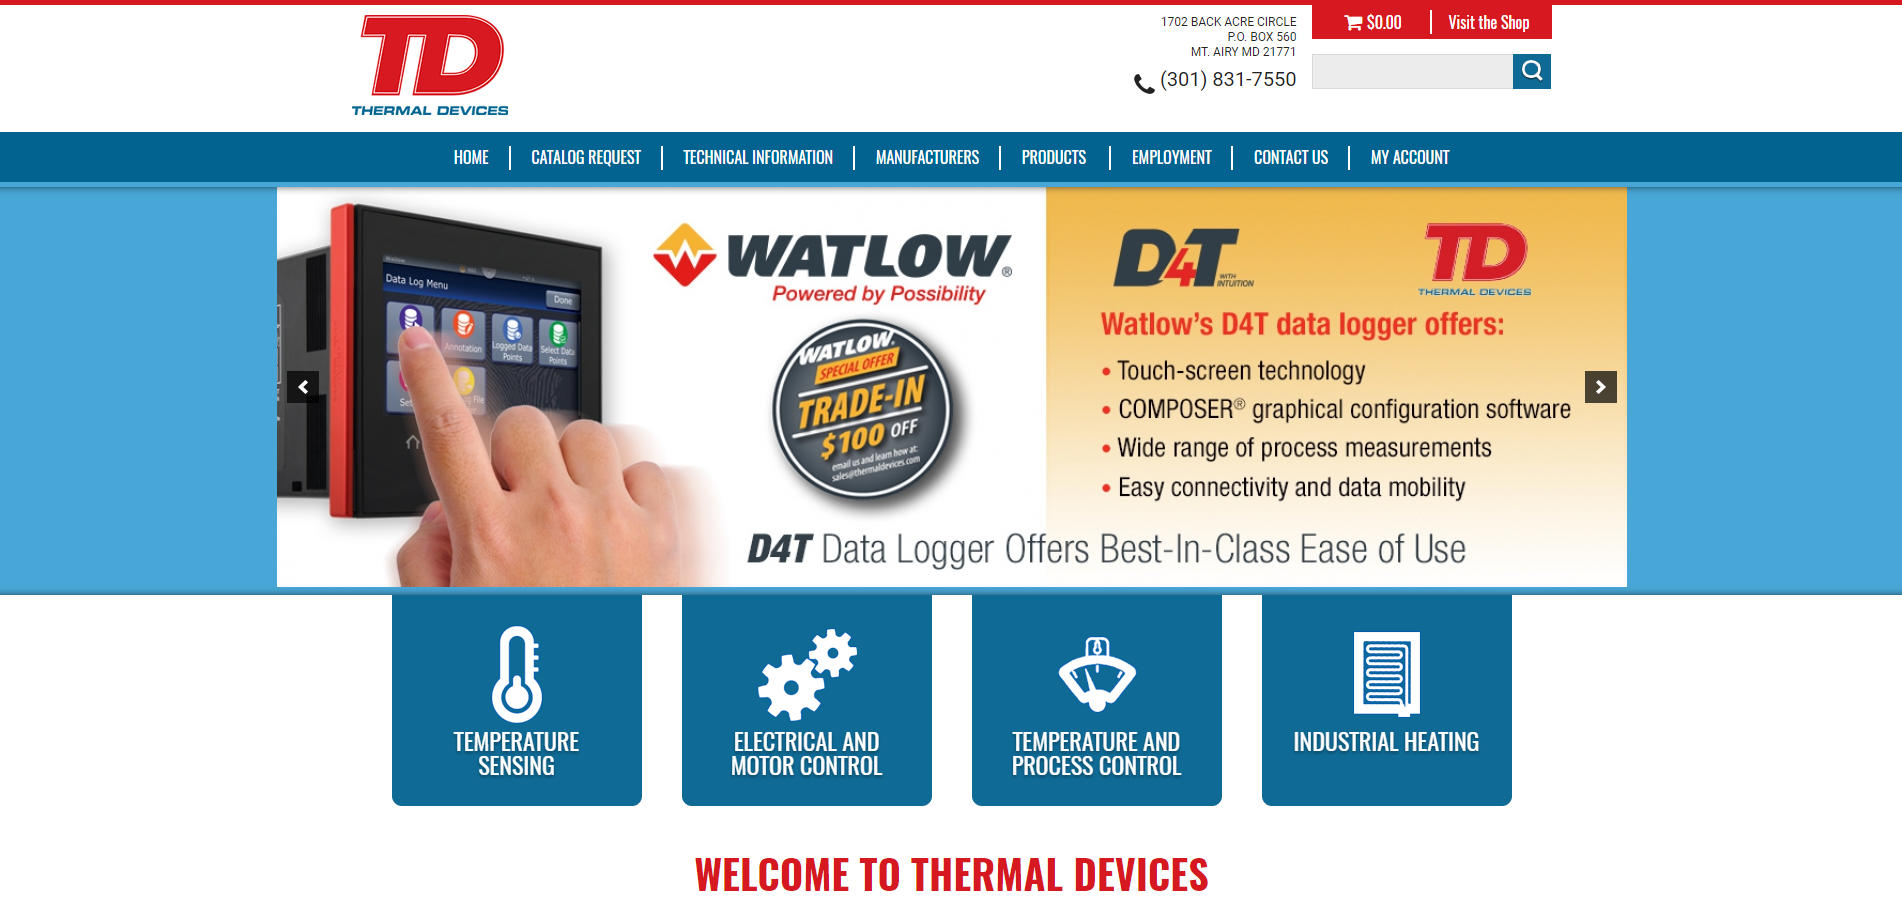 Thermal Devices' Updated Website is Functional & Attractive